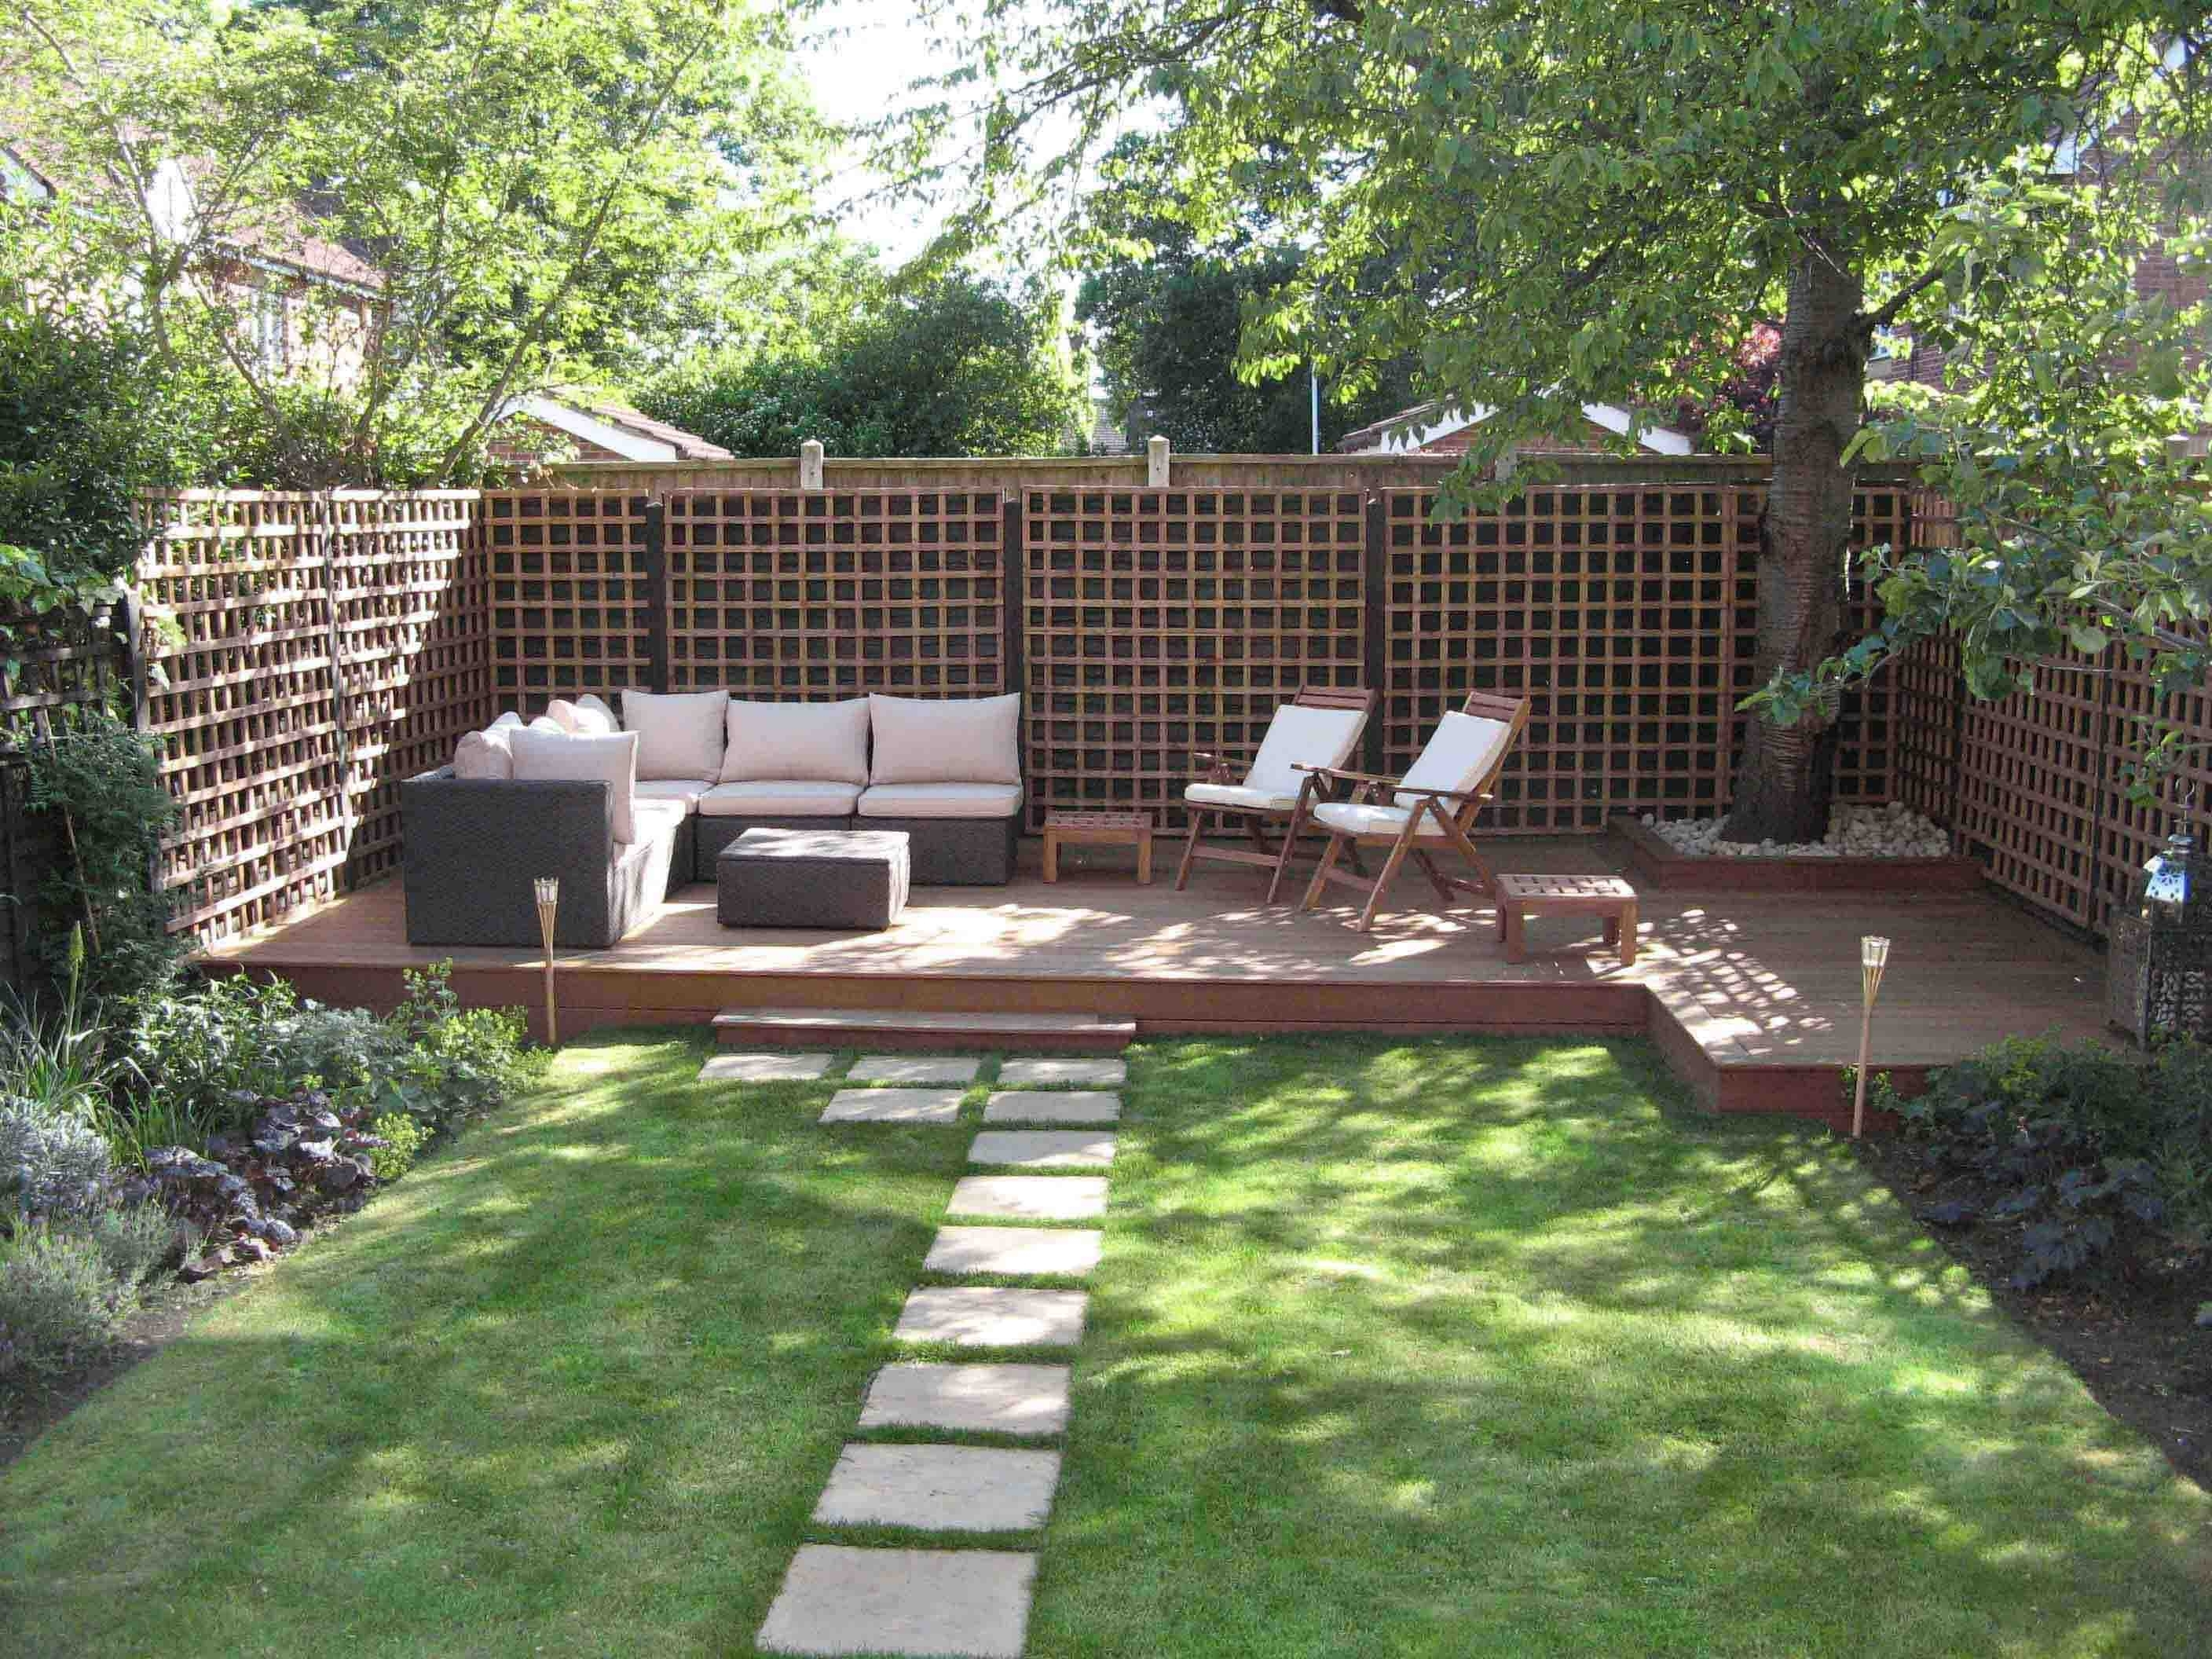 25 Landscape Design For Small Spaces   Low Deck, Yards And Decking pertaining to Small Garden Design Ideas